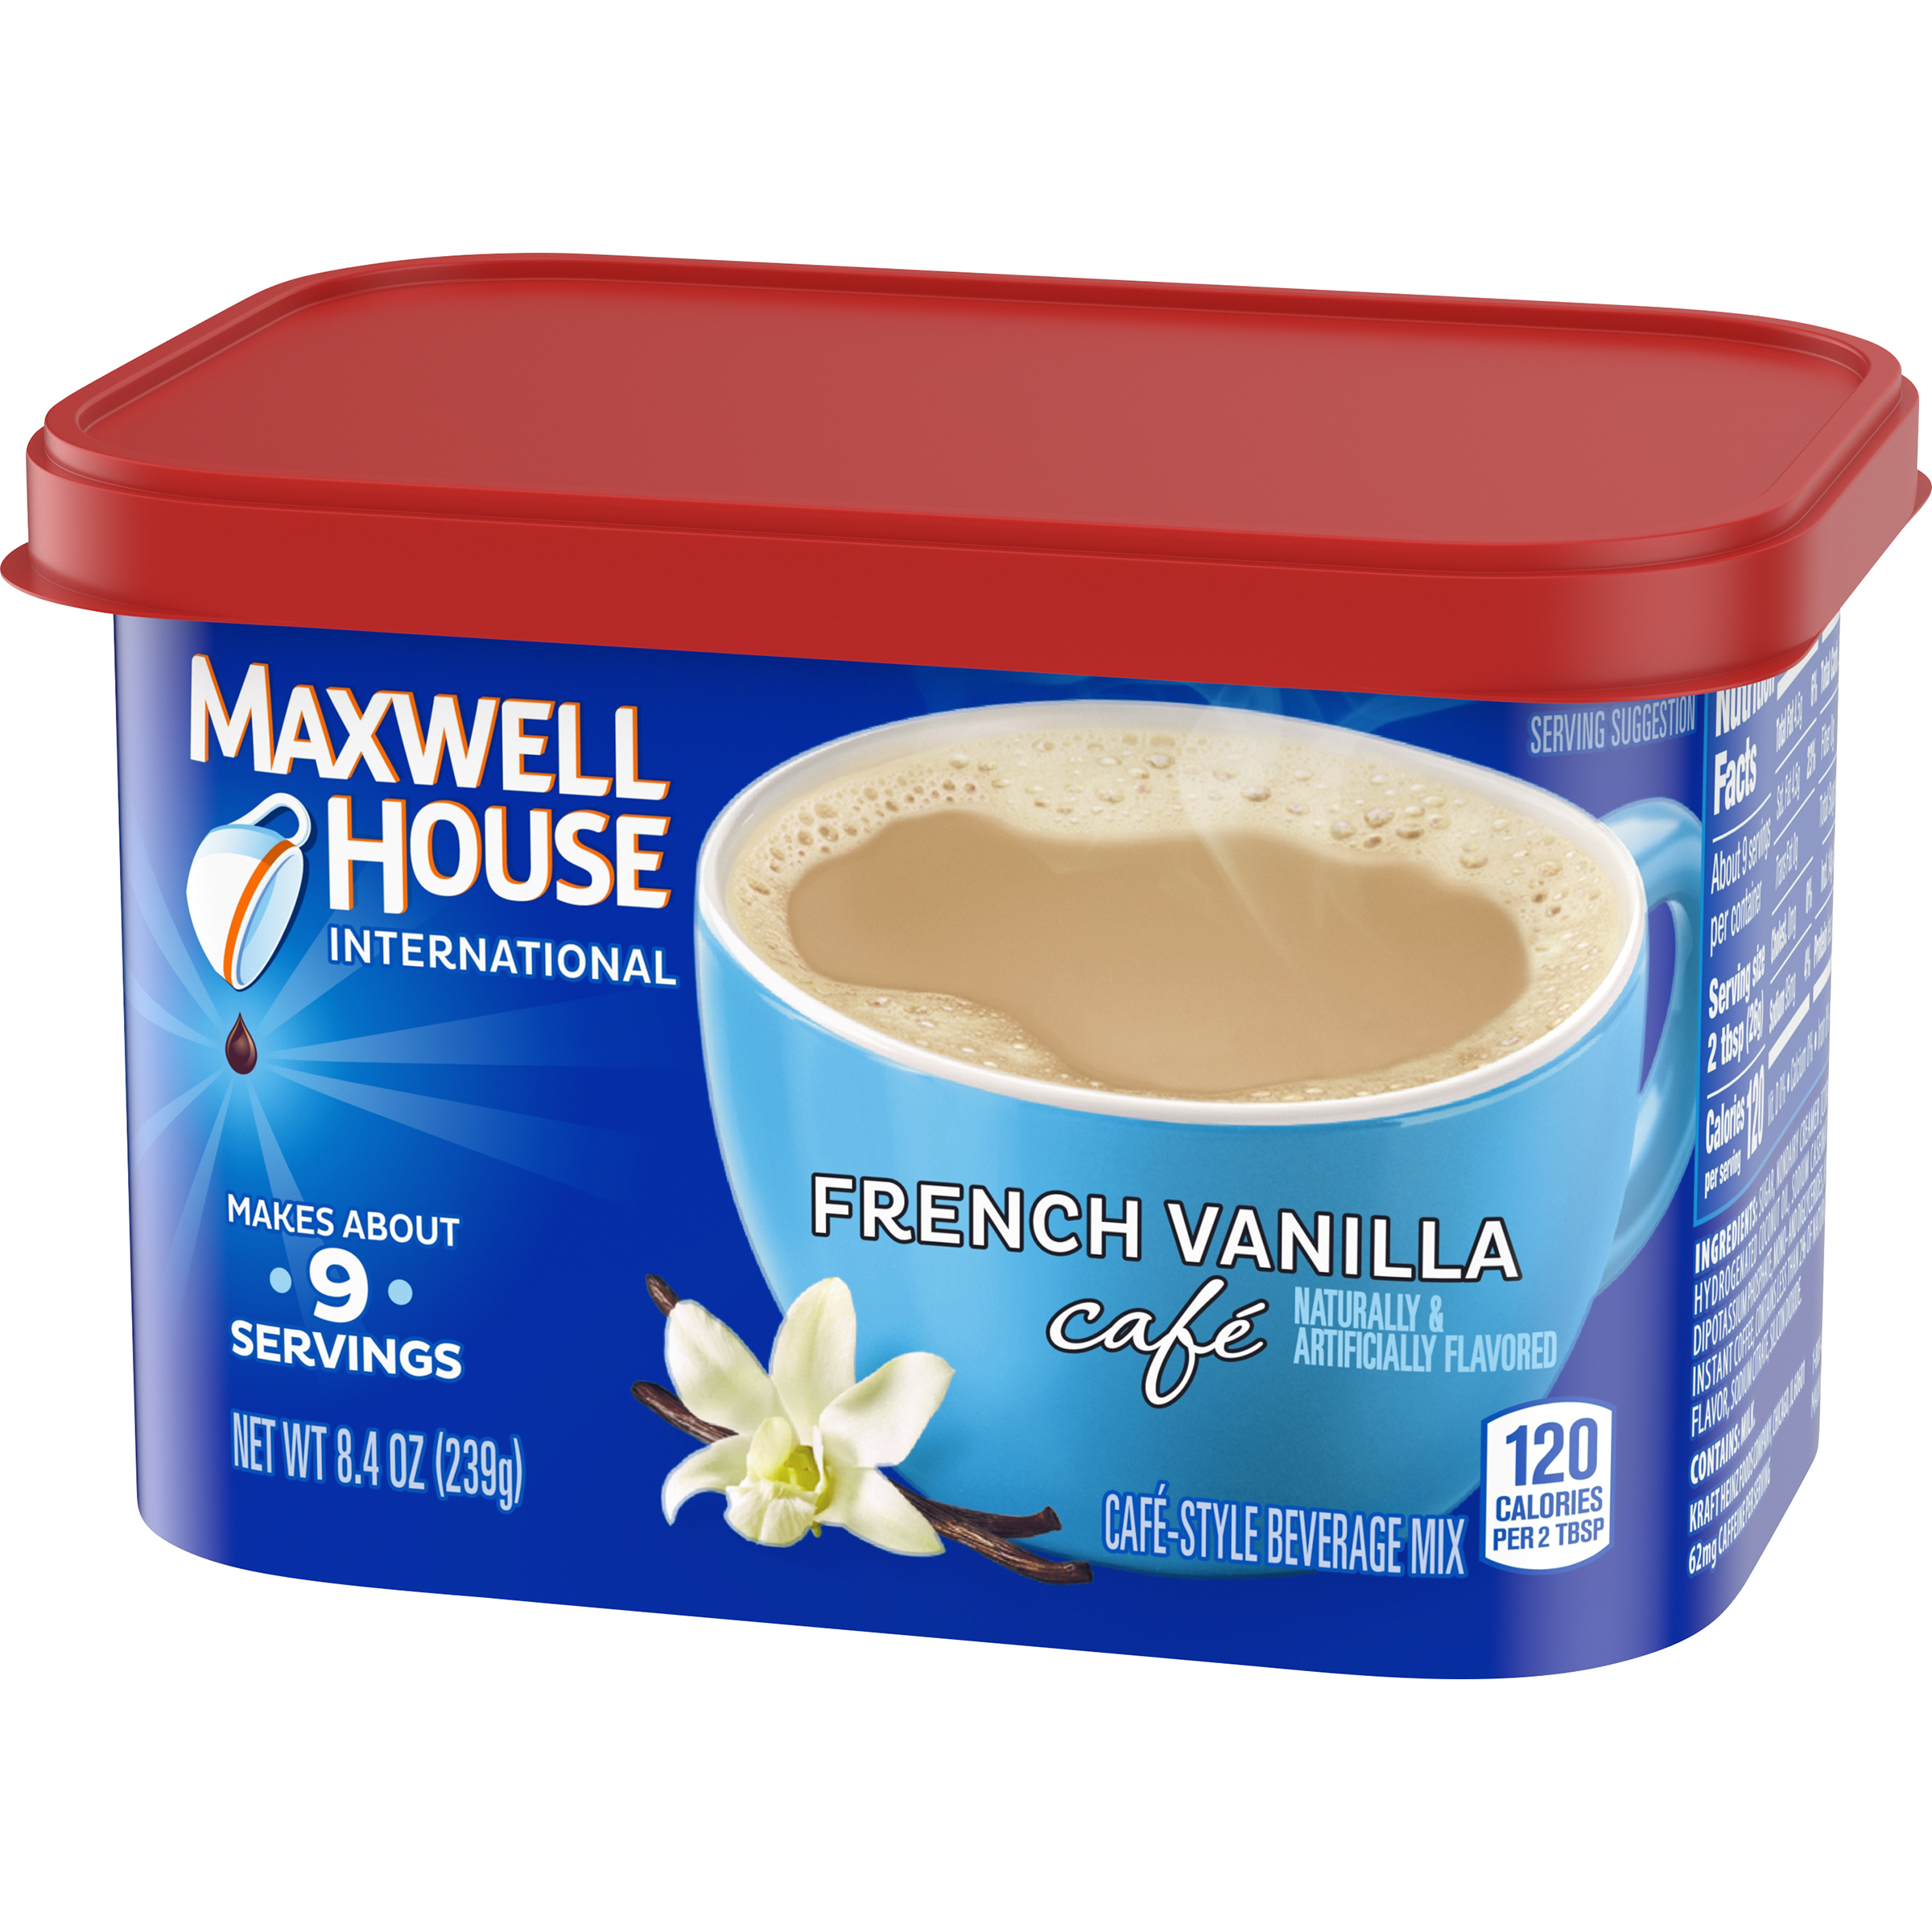 Maxwell House International French Vanilla Cafe Instant Coffee 8.4 oz Canister